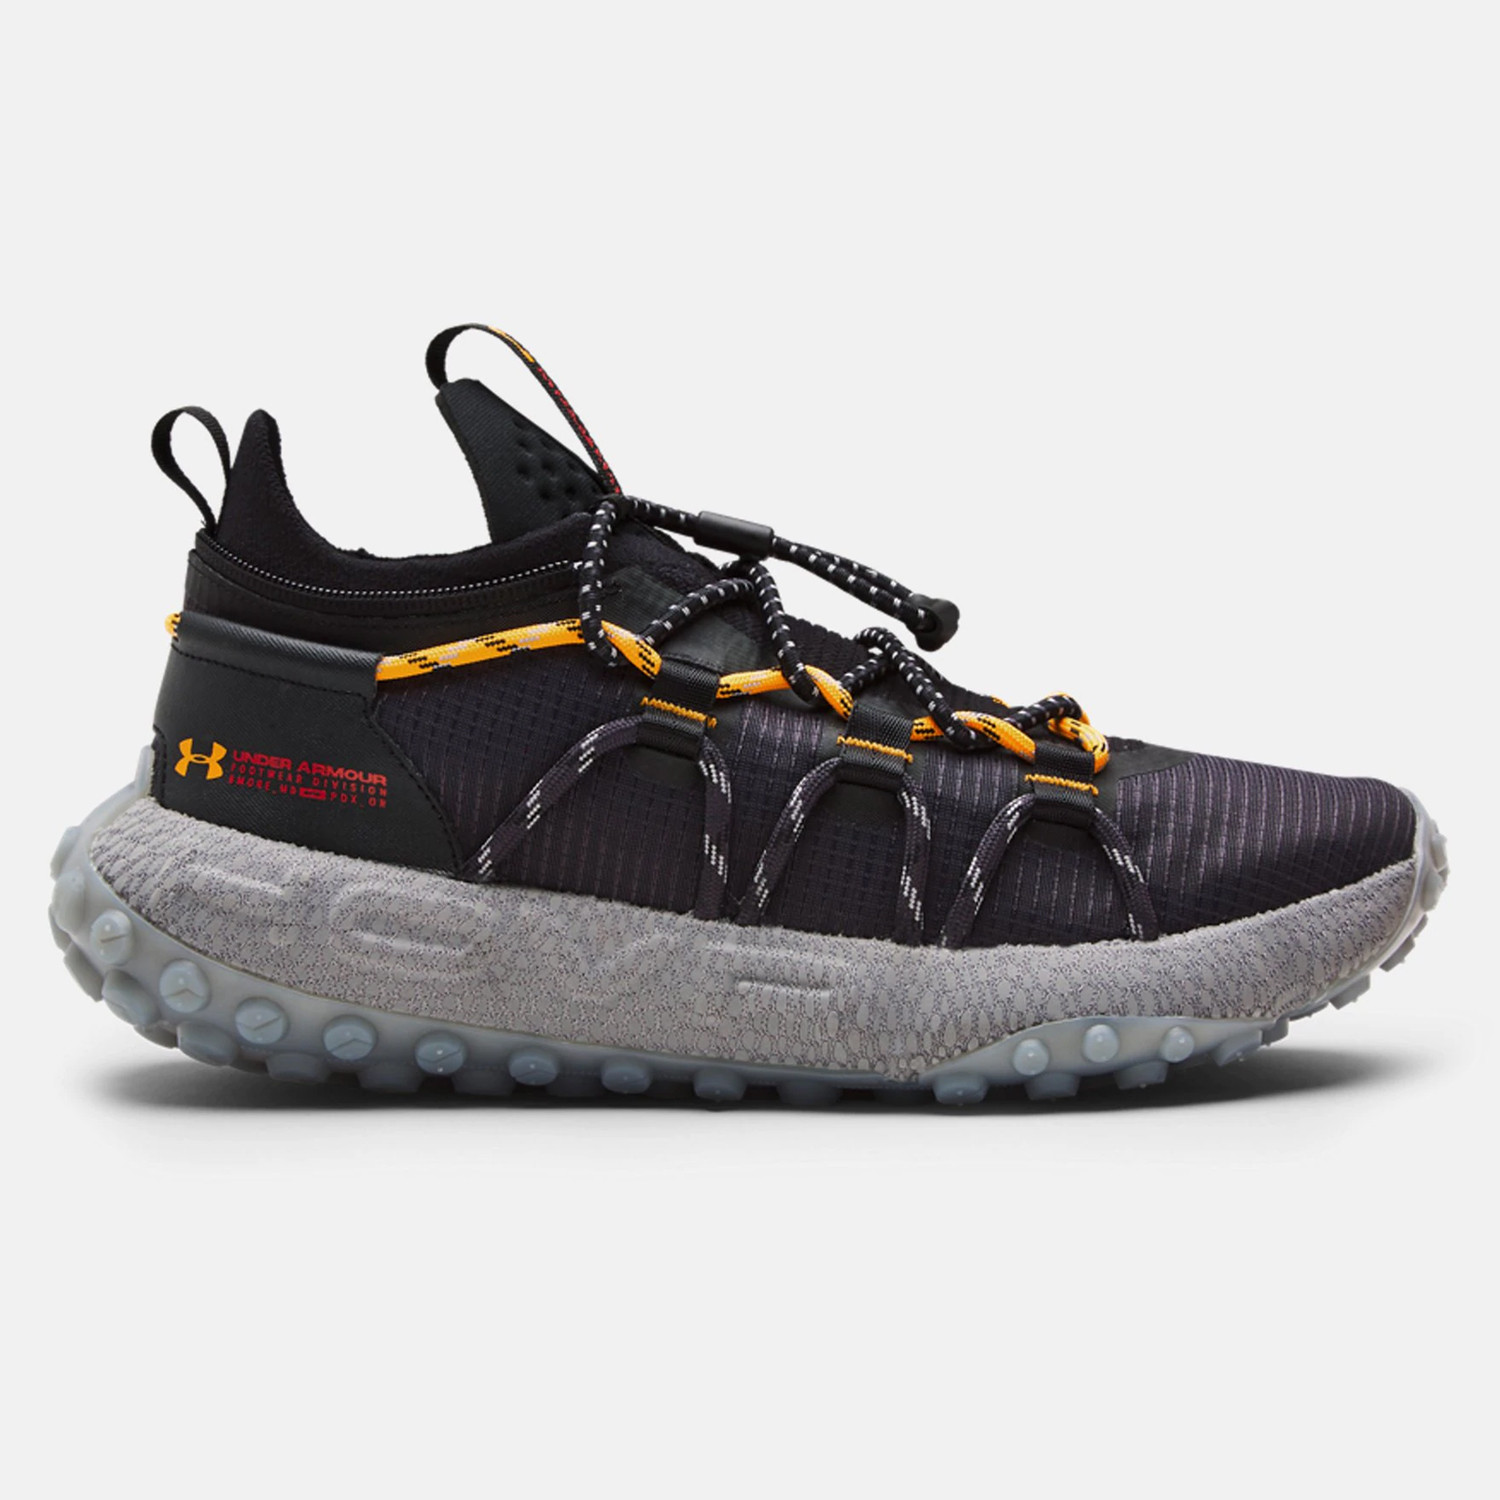 Under Armour HOVR Summit Fat Tire Sportstyle Ανδρικά Παπούτσια (9000057367_47174)